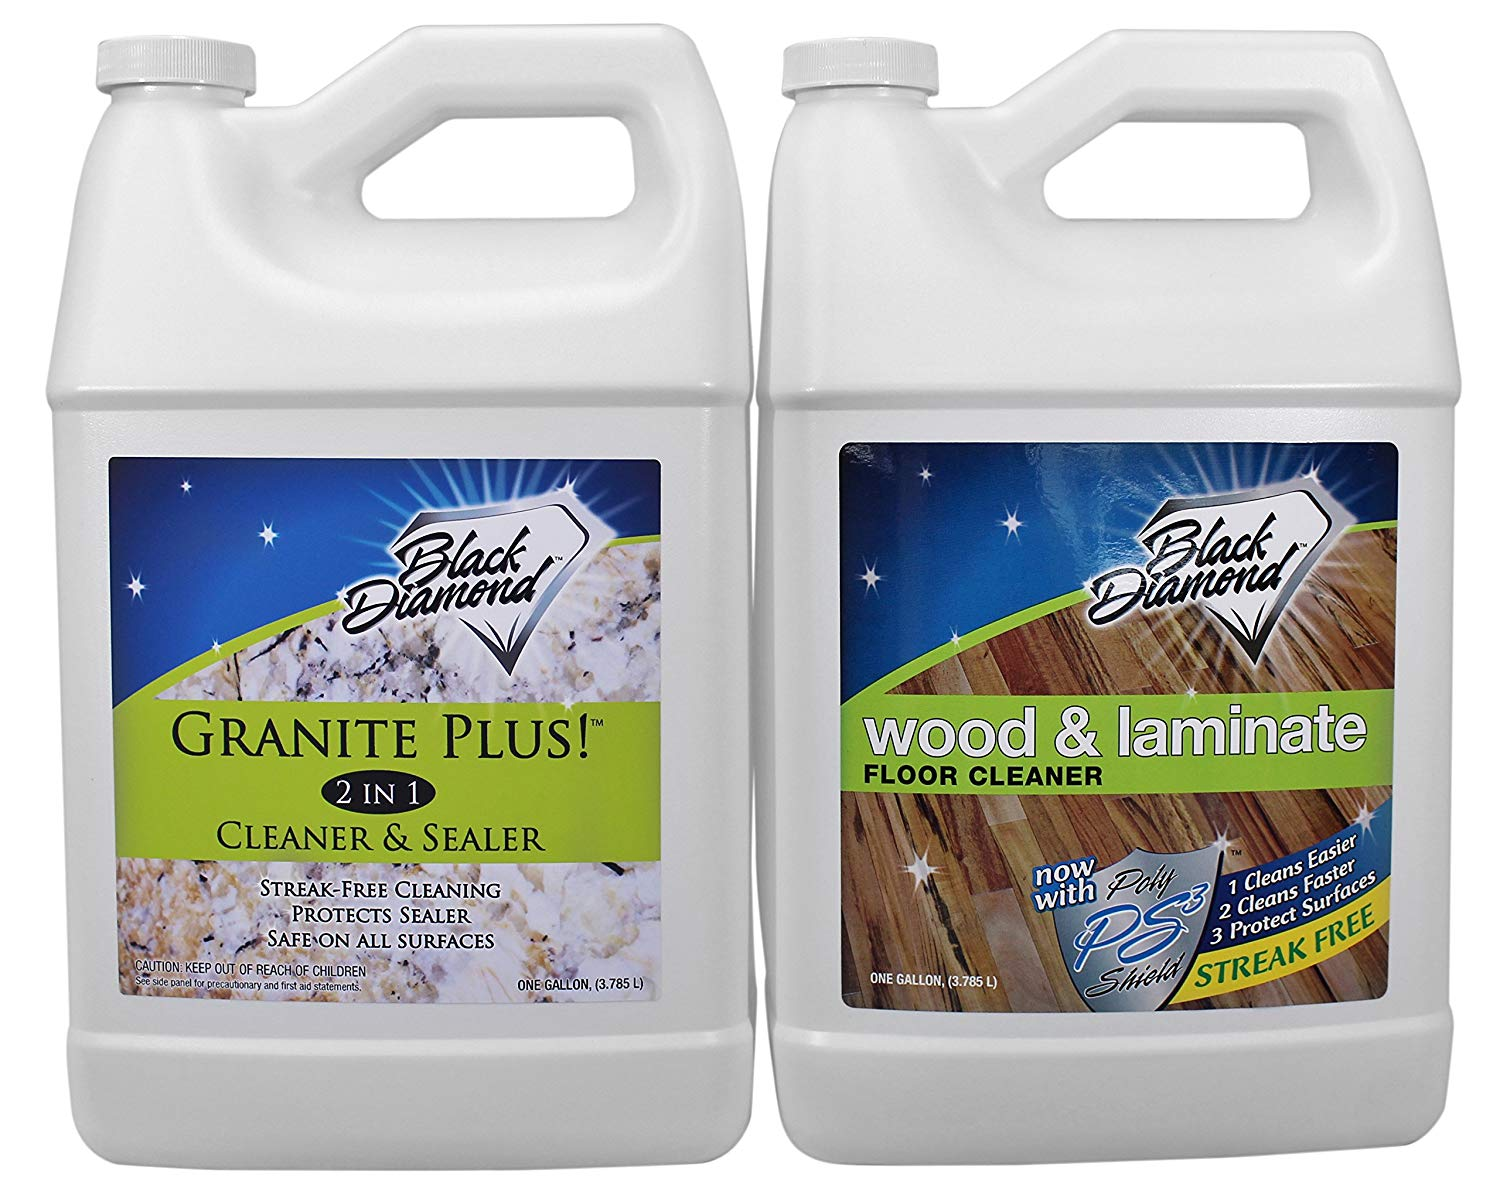 Granite Plus! 2 in 1 Cleaner & Sealer for Granite, Marble, Travertine, Limestone, Ready to Use! Black Diamond Wood & Laminate Floor Cleaner: For Hardwood, Real, Natural & Engineered Flooring –Biodegradable Safe for Cleaning All Floors (1, 2-Gallons)